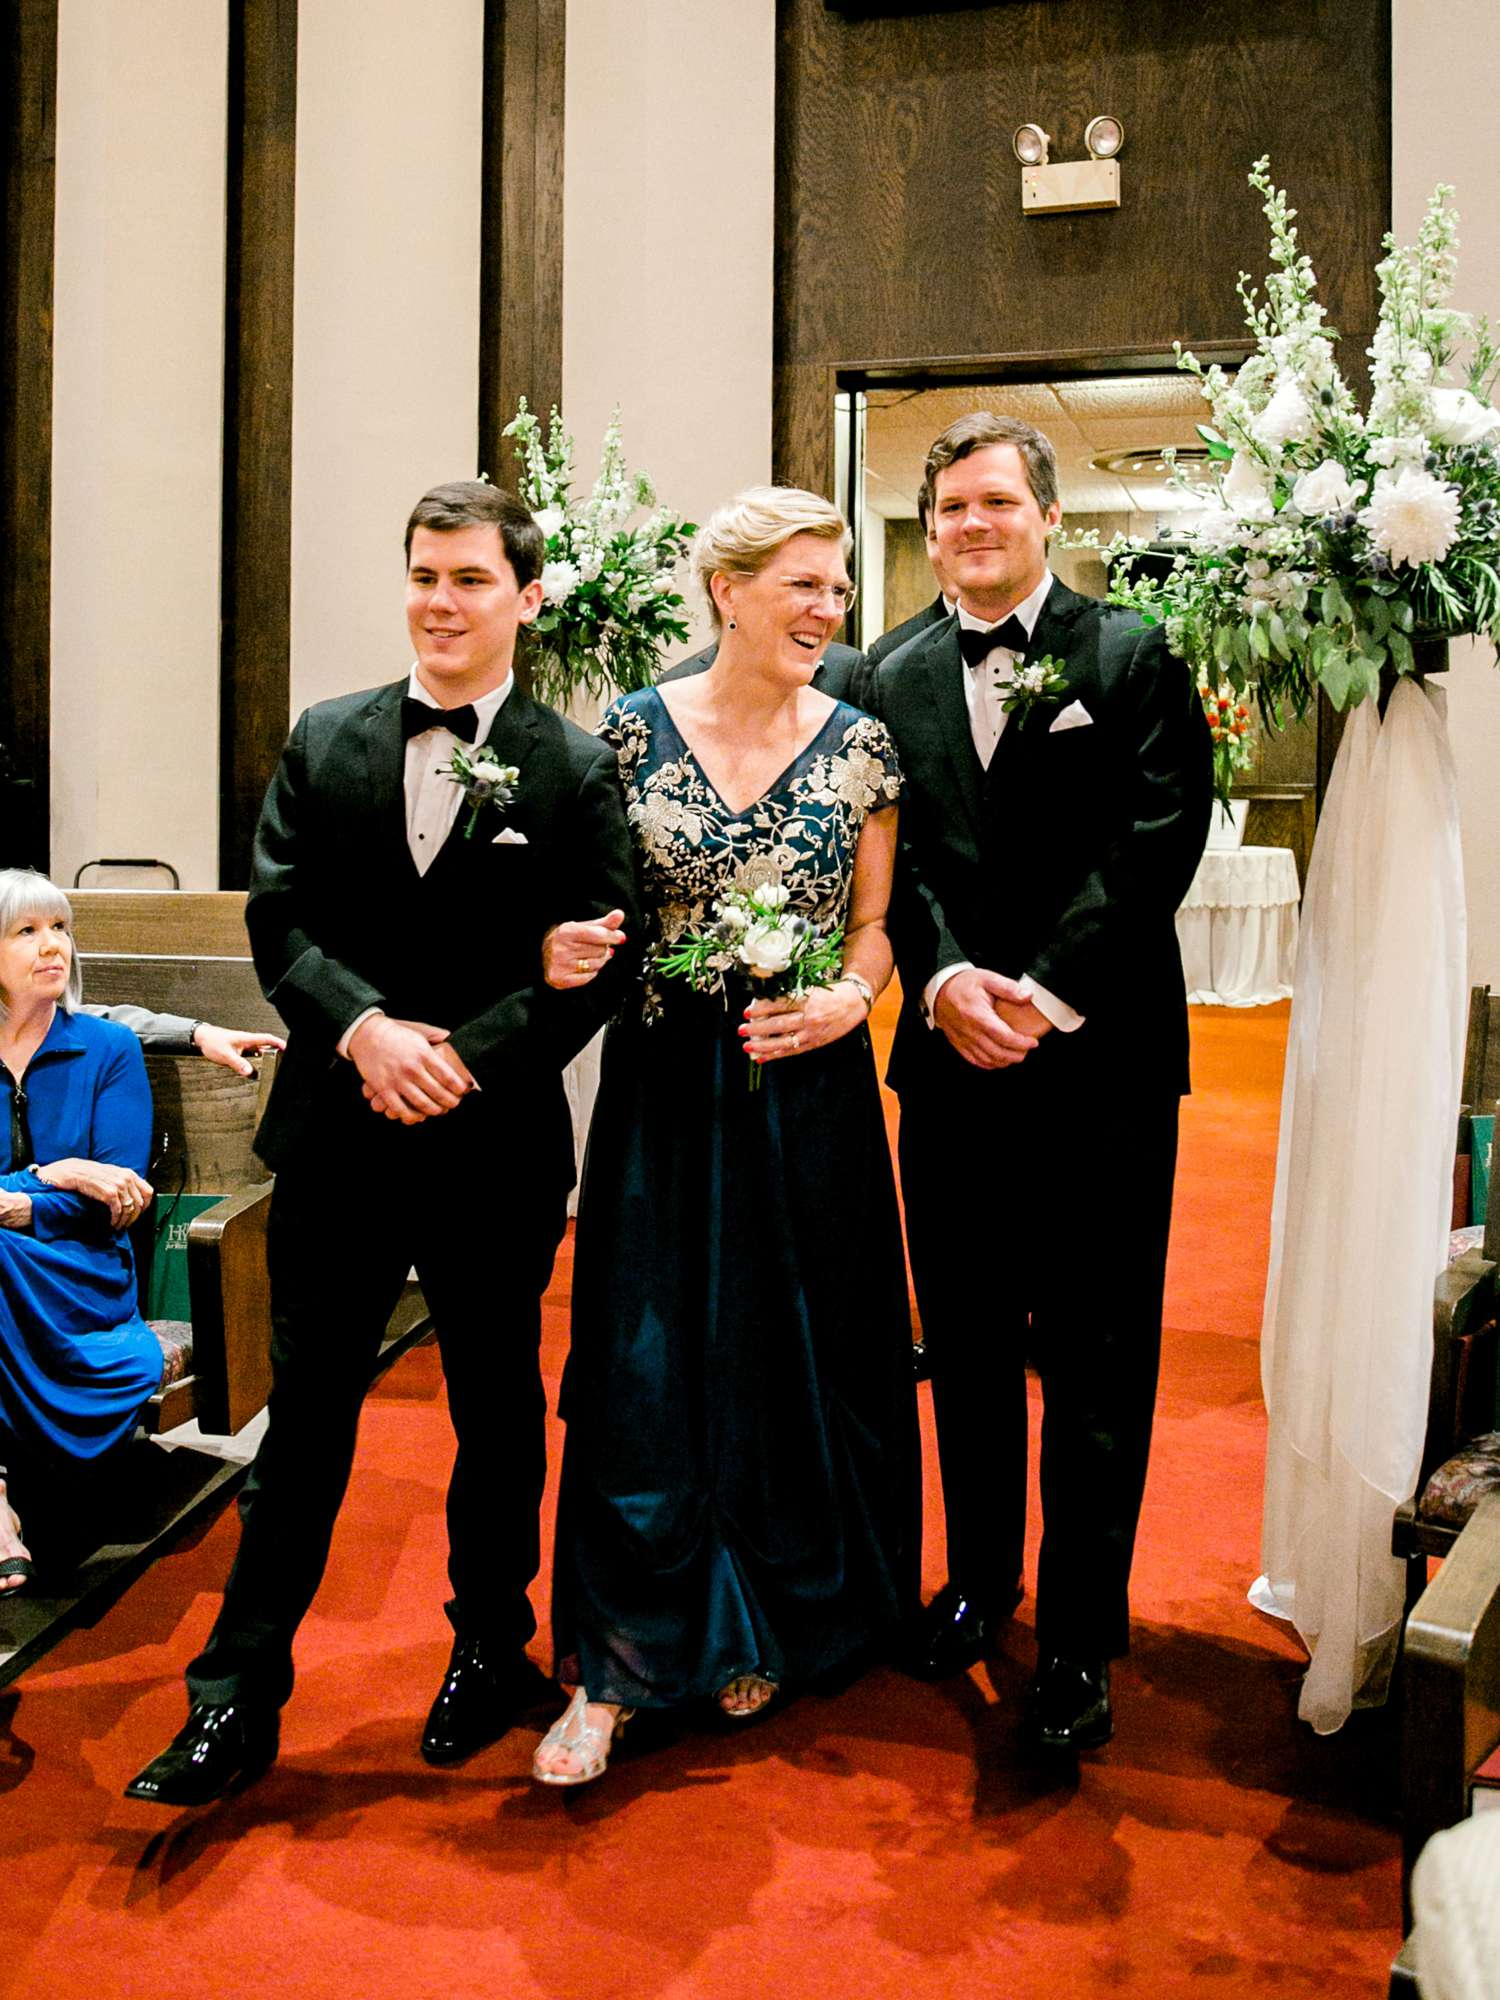 HANNAH+CRAIG+CHILDS+TEXAS+TECH+WEDDING+ALLEEJ+LUBBOCK+PHOTOGRAPHER_0052.jpg